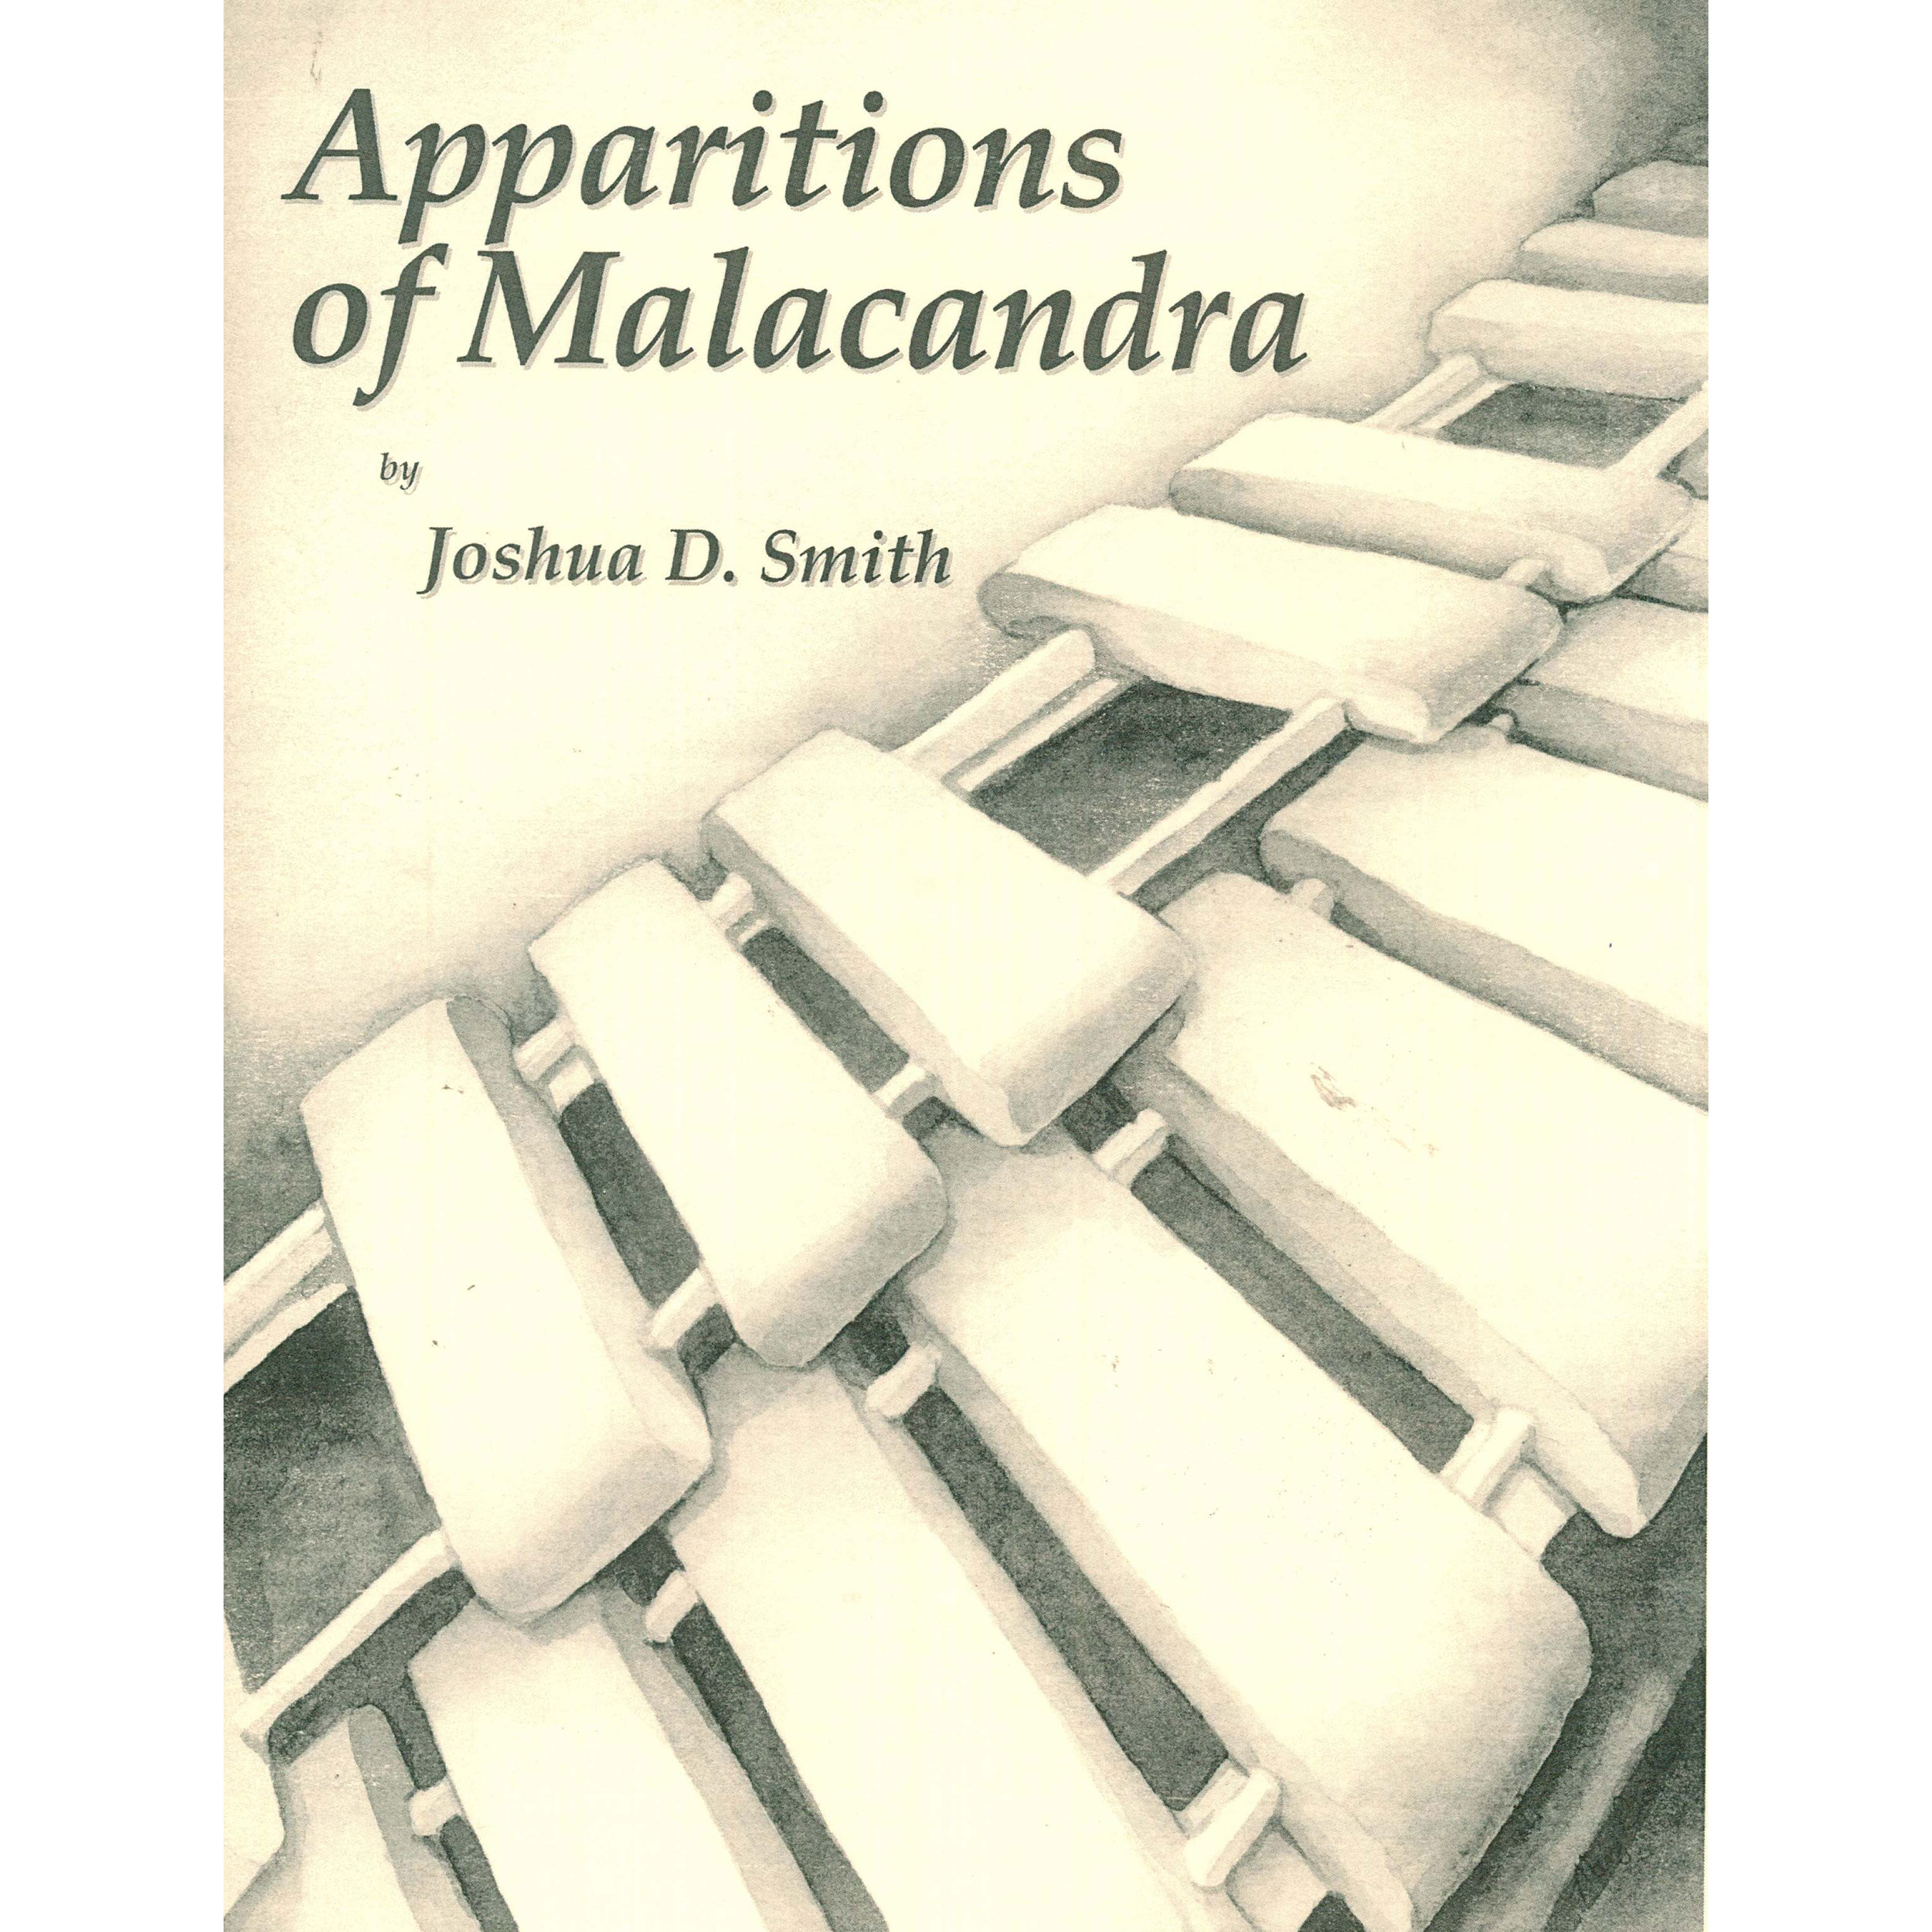 Apparitions of Malacandra by Joshua Smith